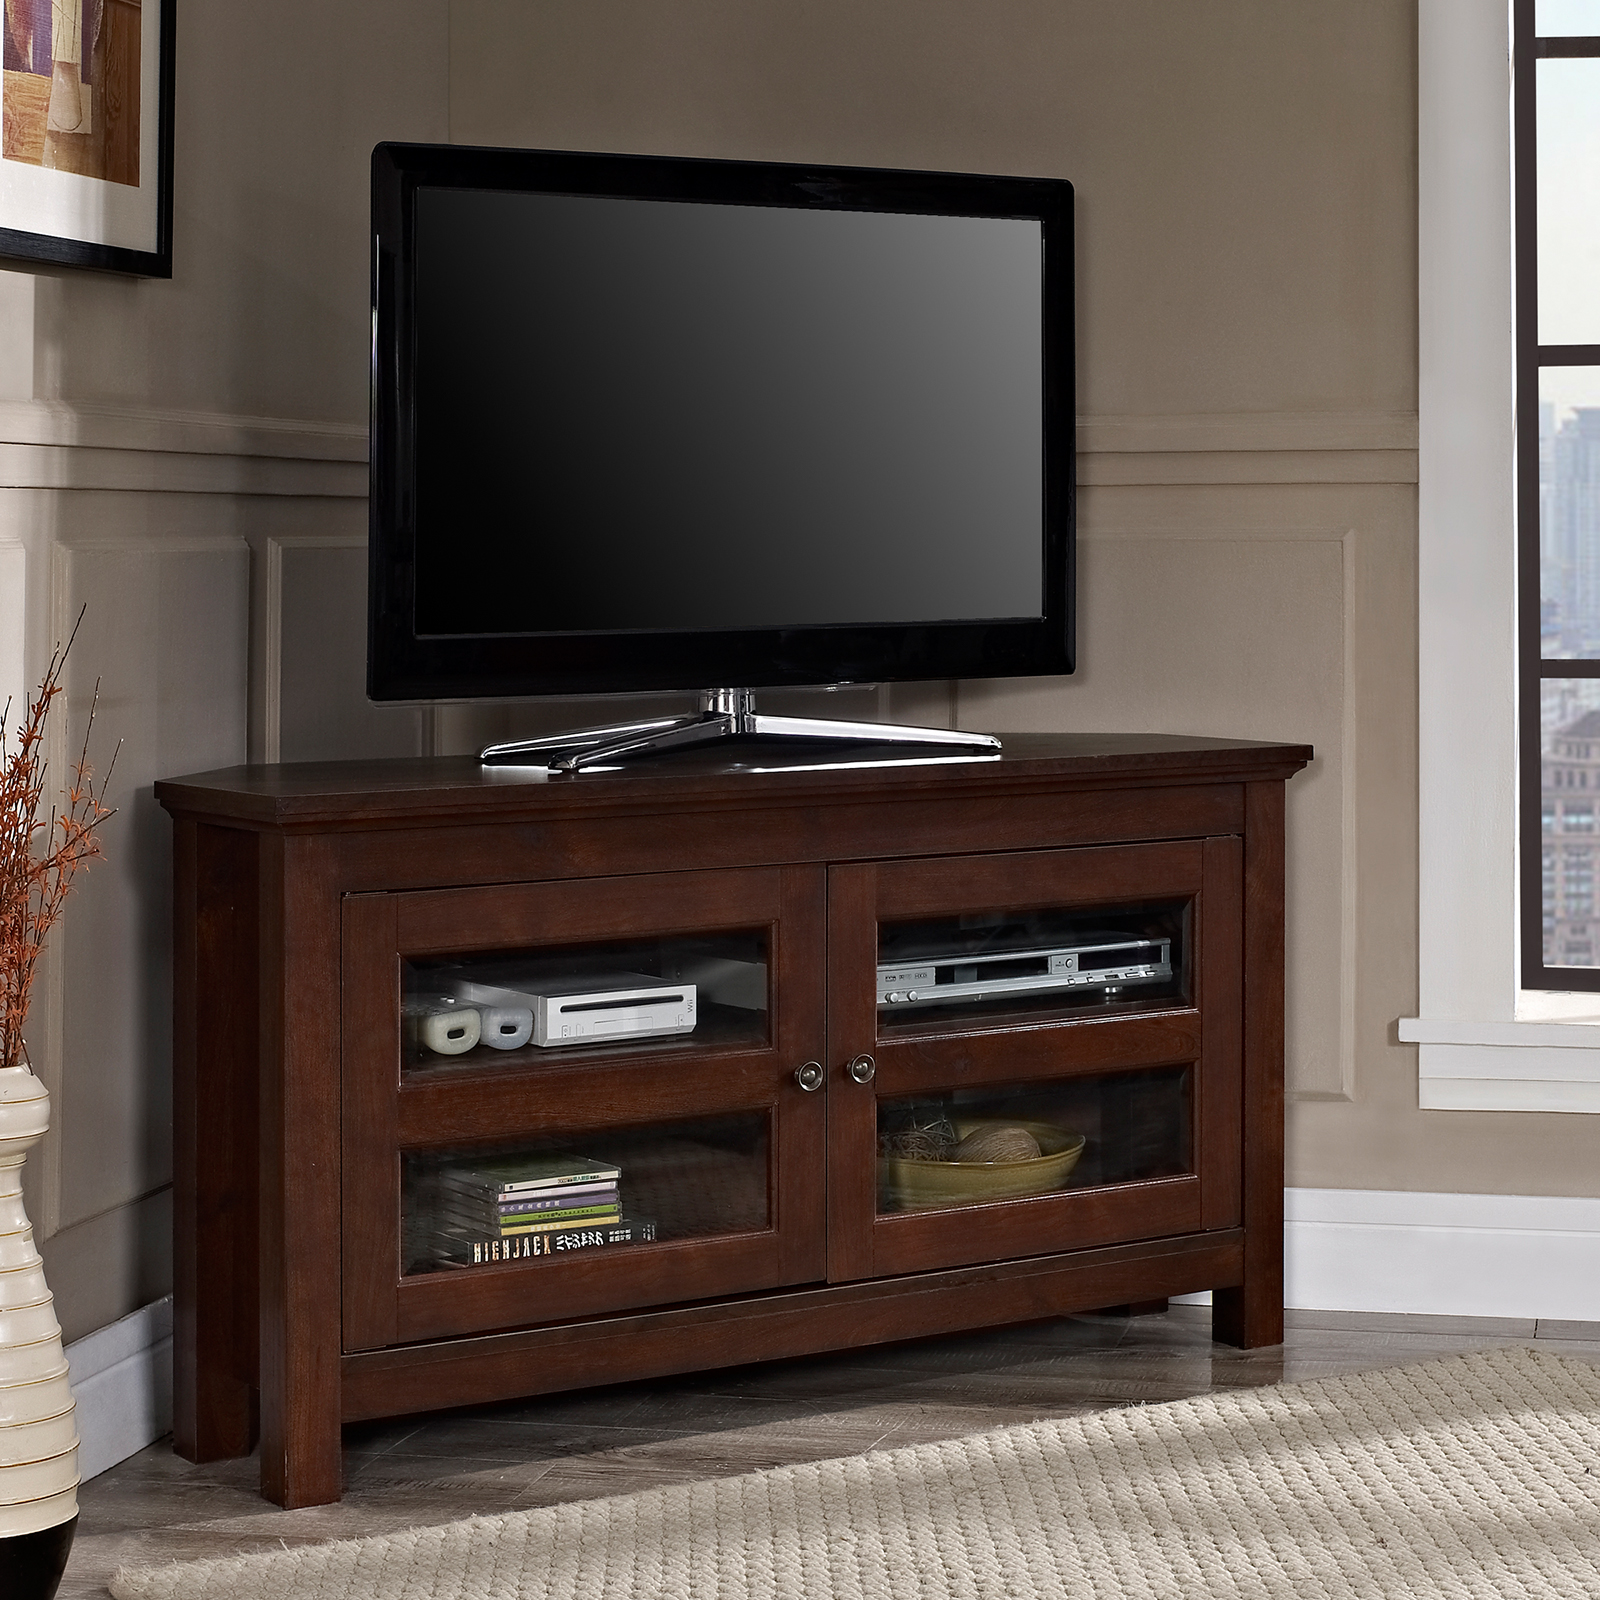 Delicieux Wood Corner TV Media Stand Storage Console | Hayneedle